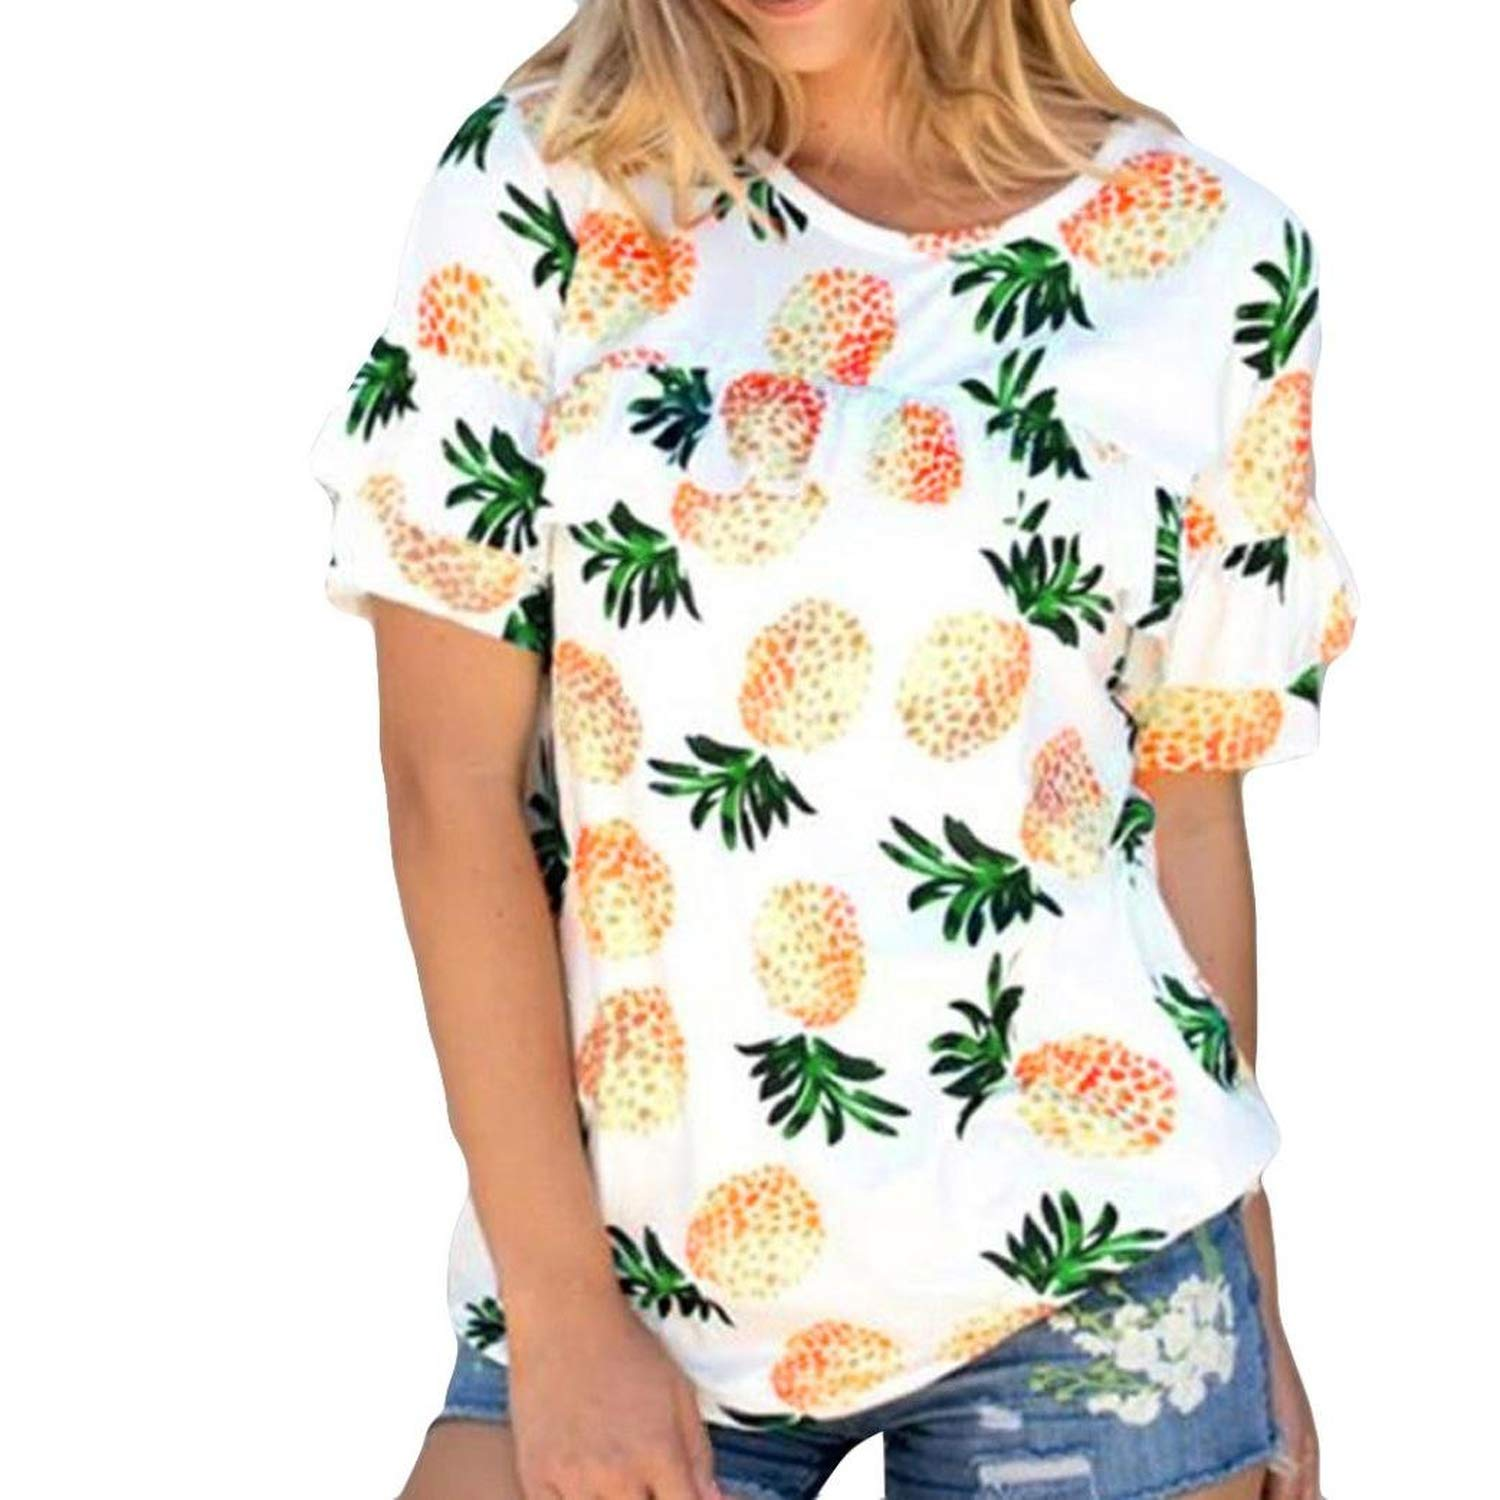 ad7c981f3 Women Short Sleeve Pineapple Printing Crop Top T-Shirt Tops Tee for Summer,  White-4, X-Large at Amazon Women's Clothing store: